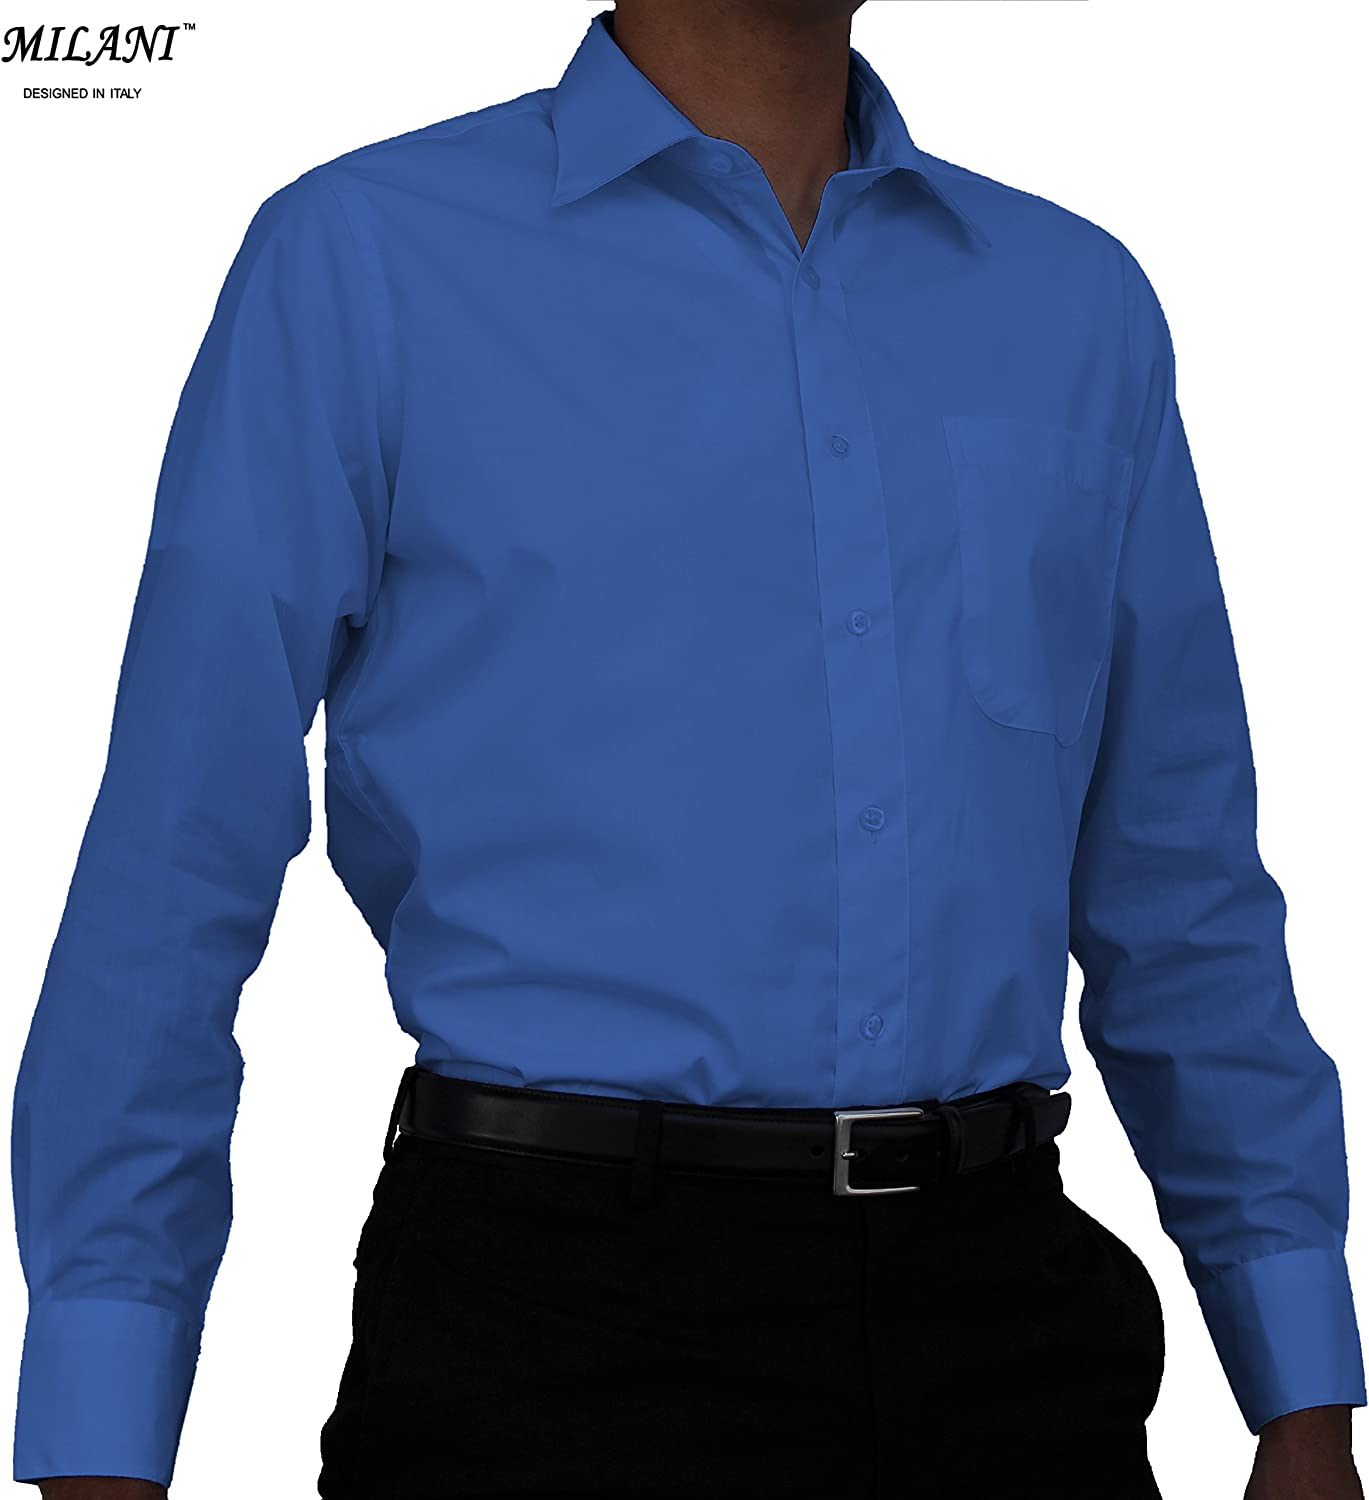 Milani Mens Dress Shirt with Standard Cuffs 16.5 Neck 34//35 Sleeve in Royal Blue